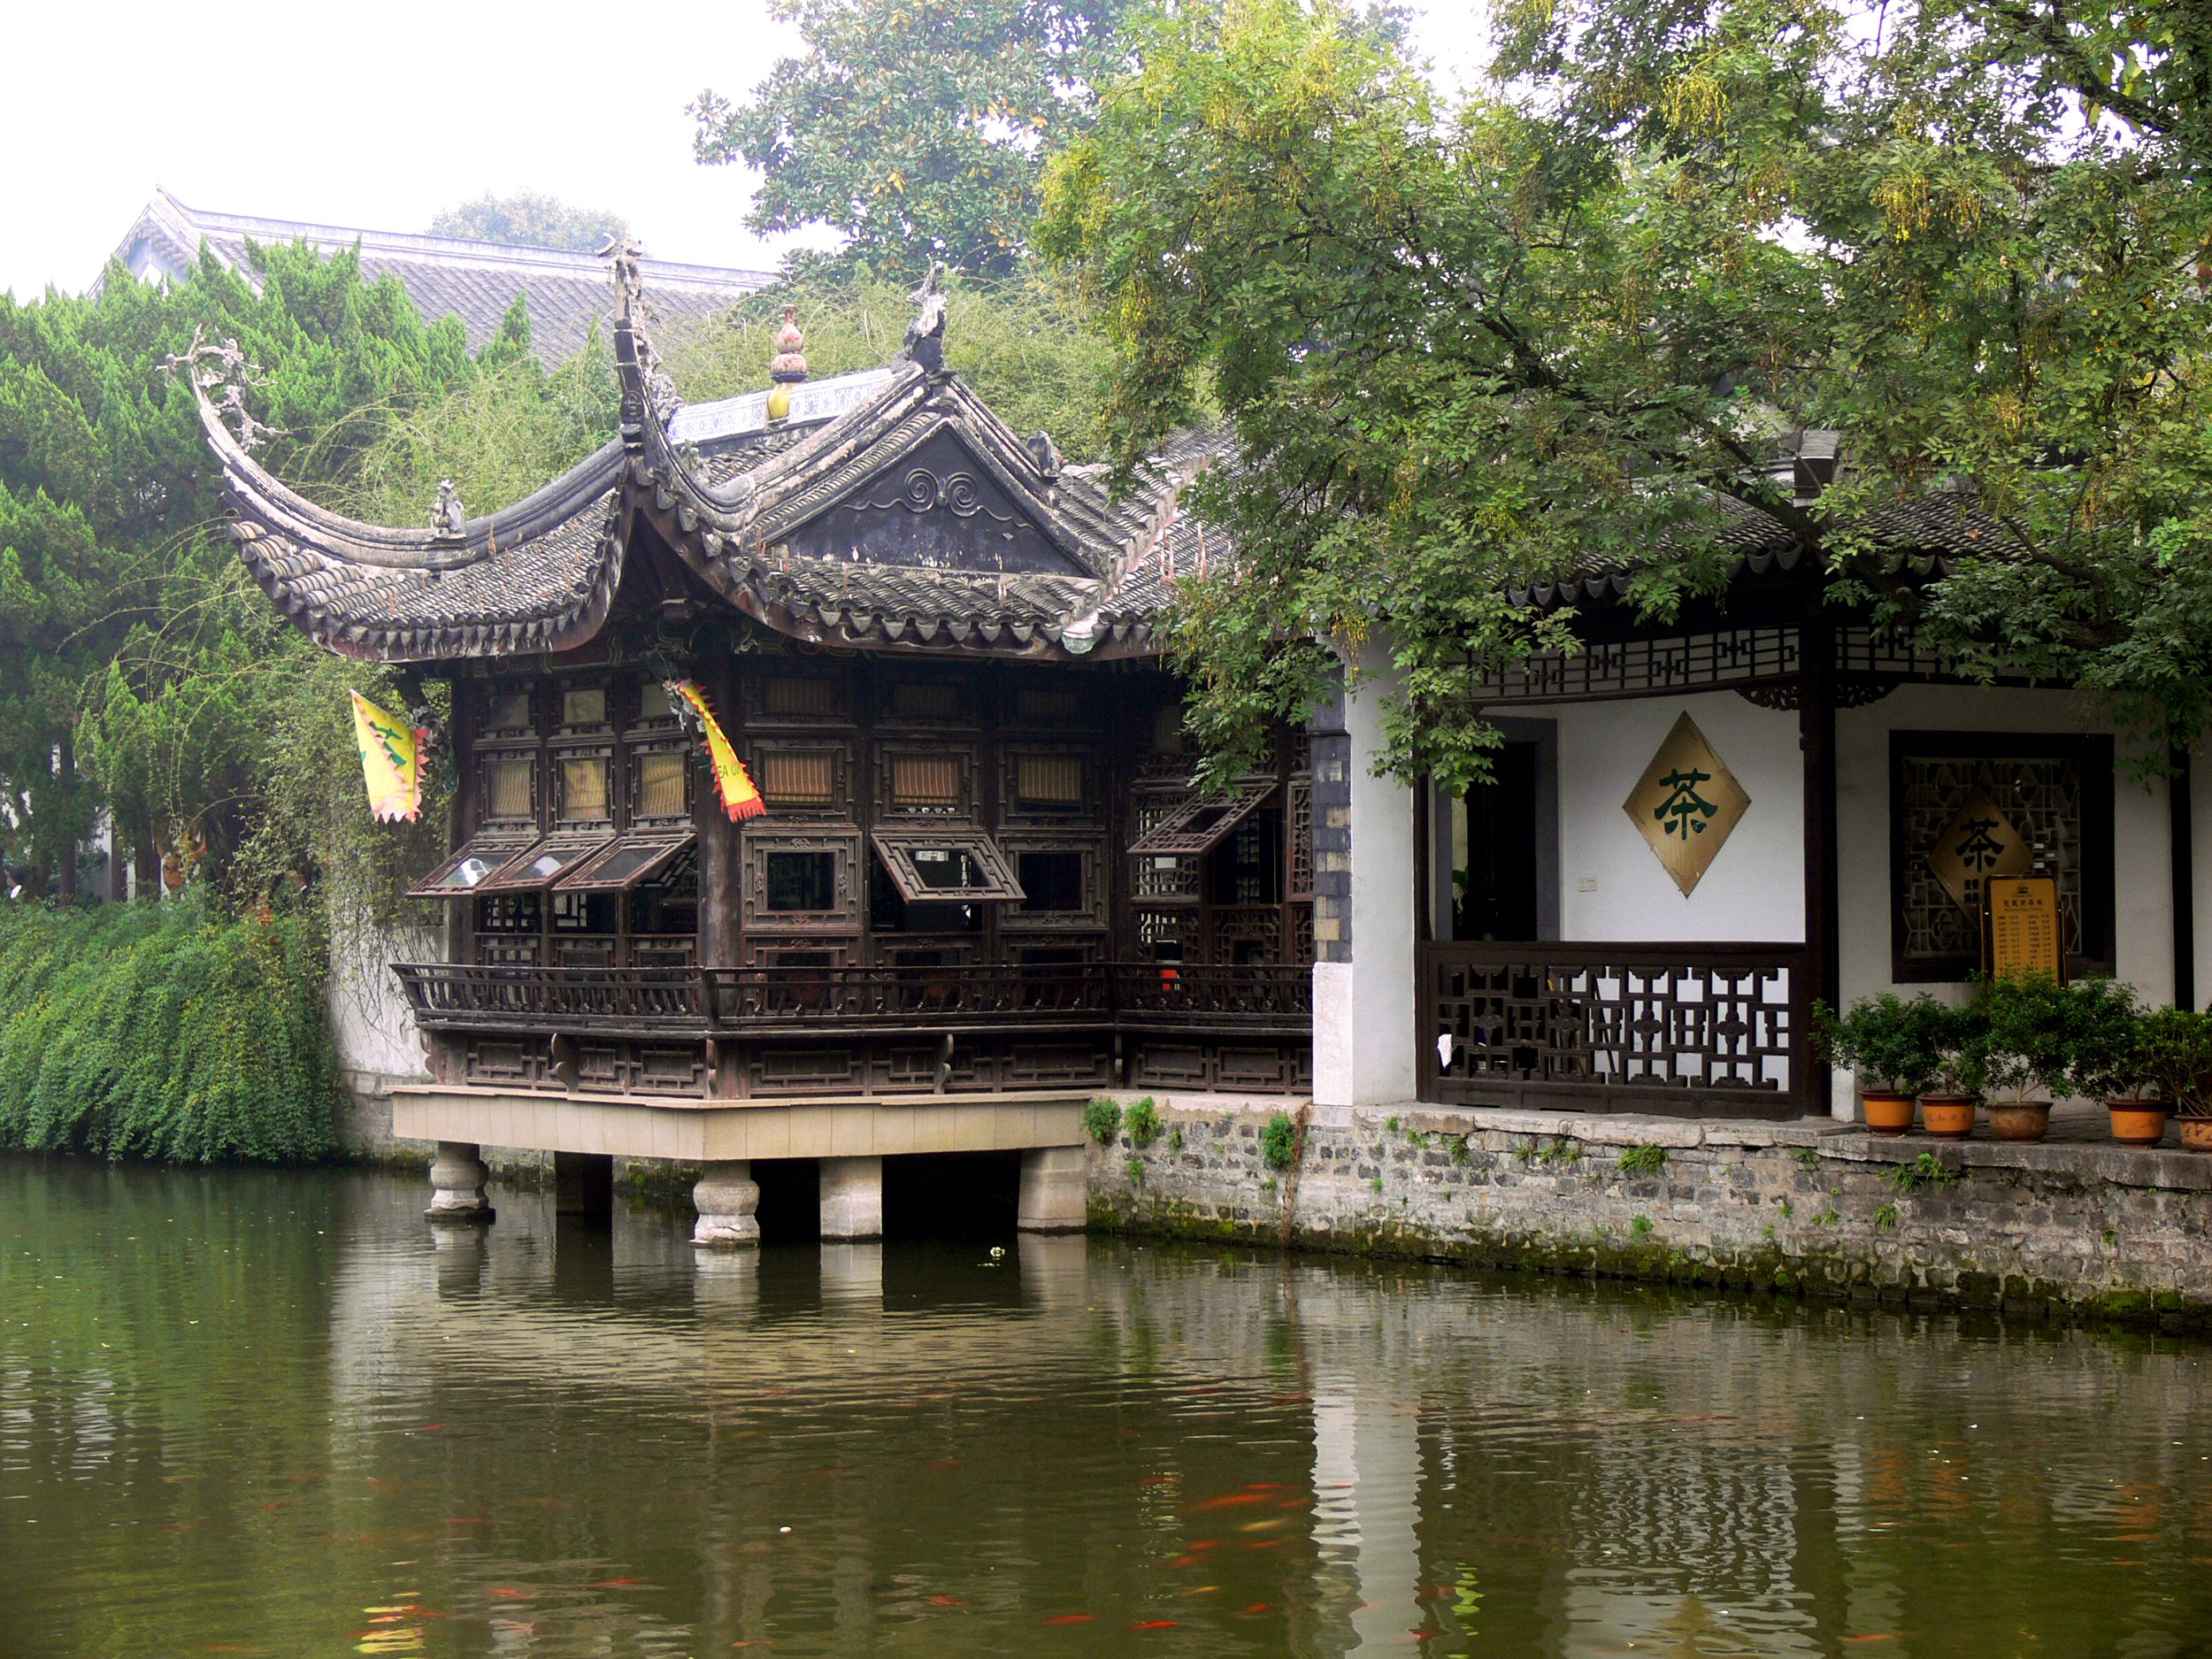 What did people use for shelter in ancient China?